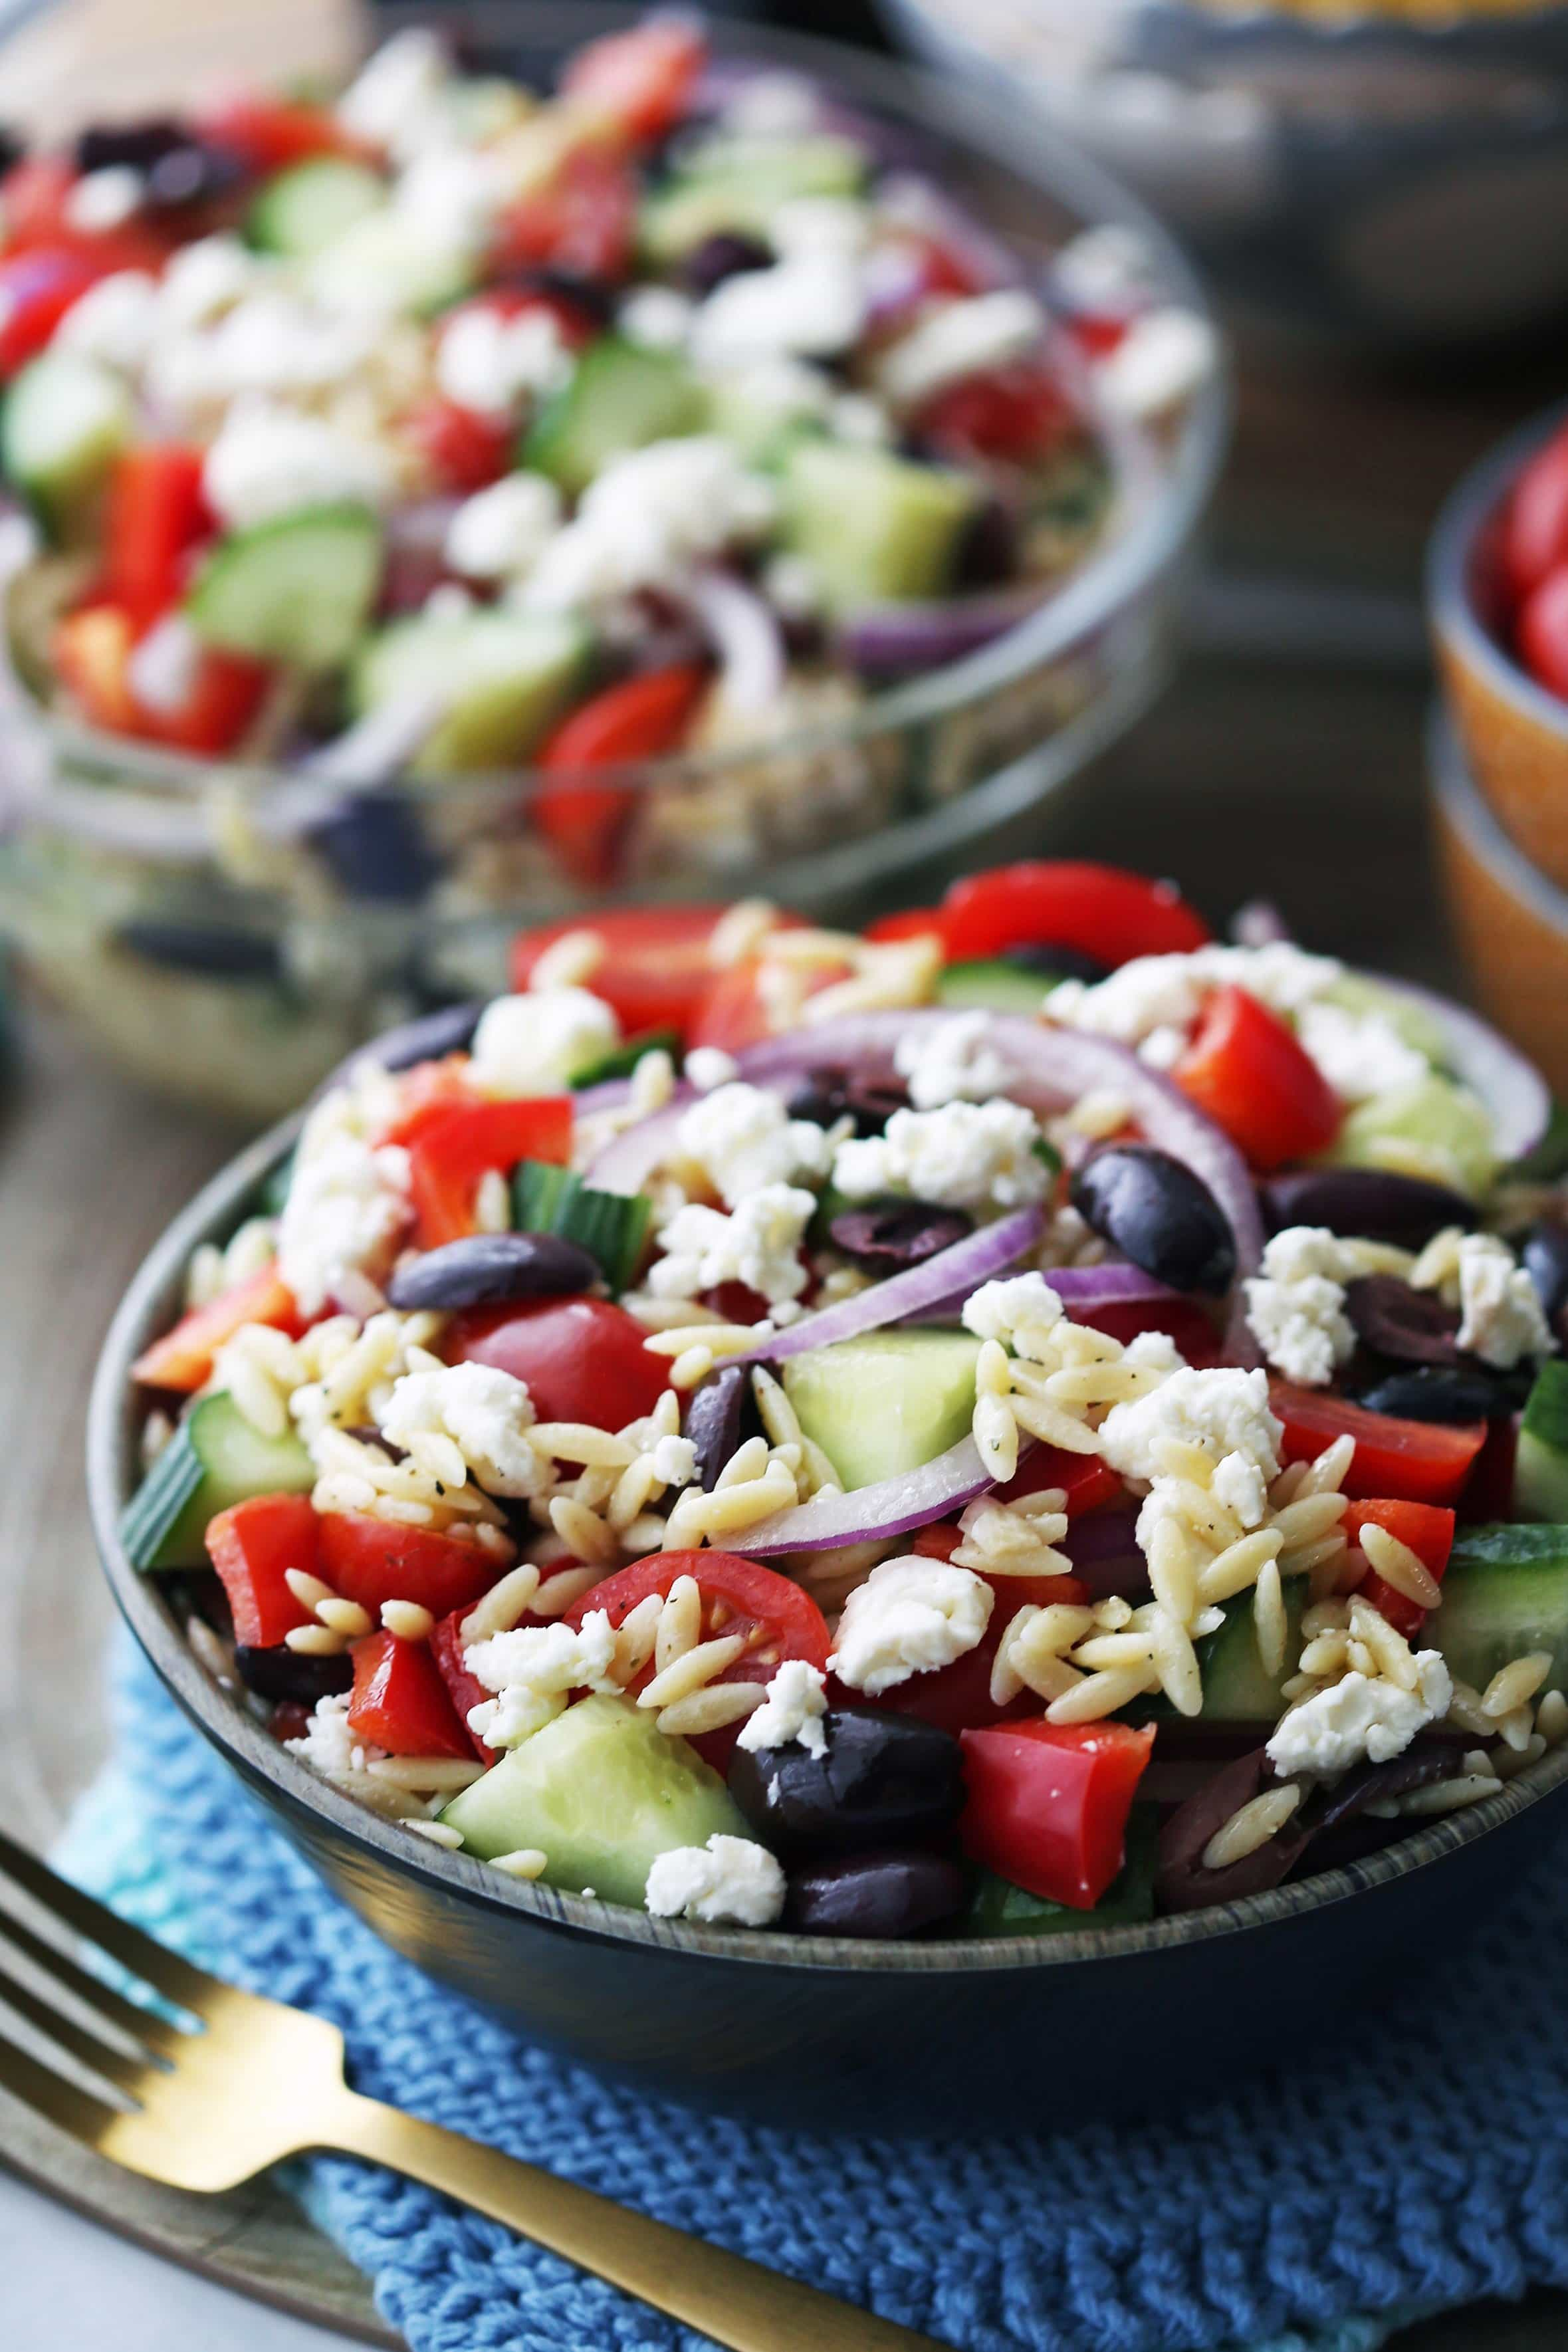 Greek orzo pasta salad with lemon vinaigrette in a brown bowl and in a large glass bowl.